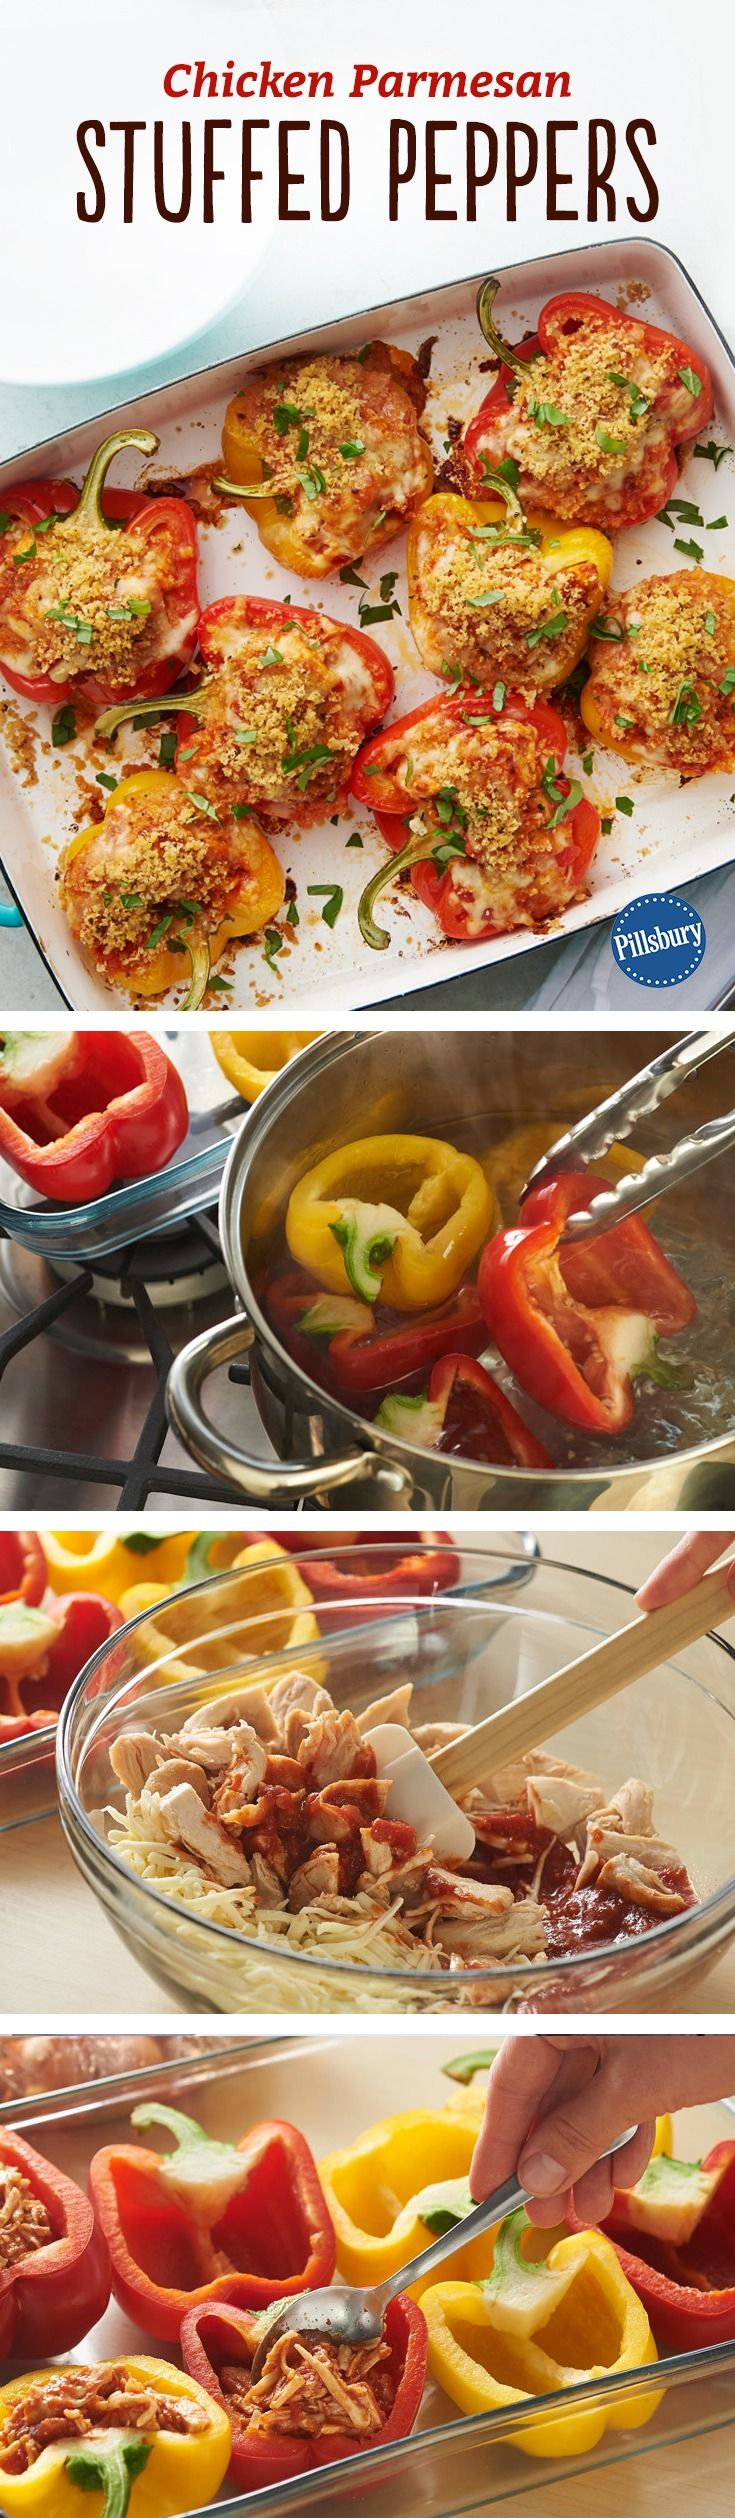 Chicken Parmesan Stuffed Peppers Recipe - Stuffed peppers take a chicken Parmesan twist in this delicious and colorful version filled with chicken, pasta sauce and mozzarella, finished with a crispy bread crumb and Parmesan cheese topping.